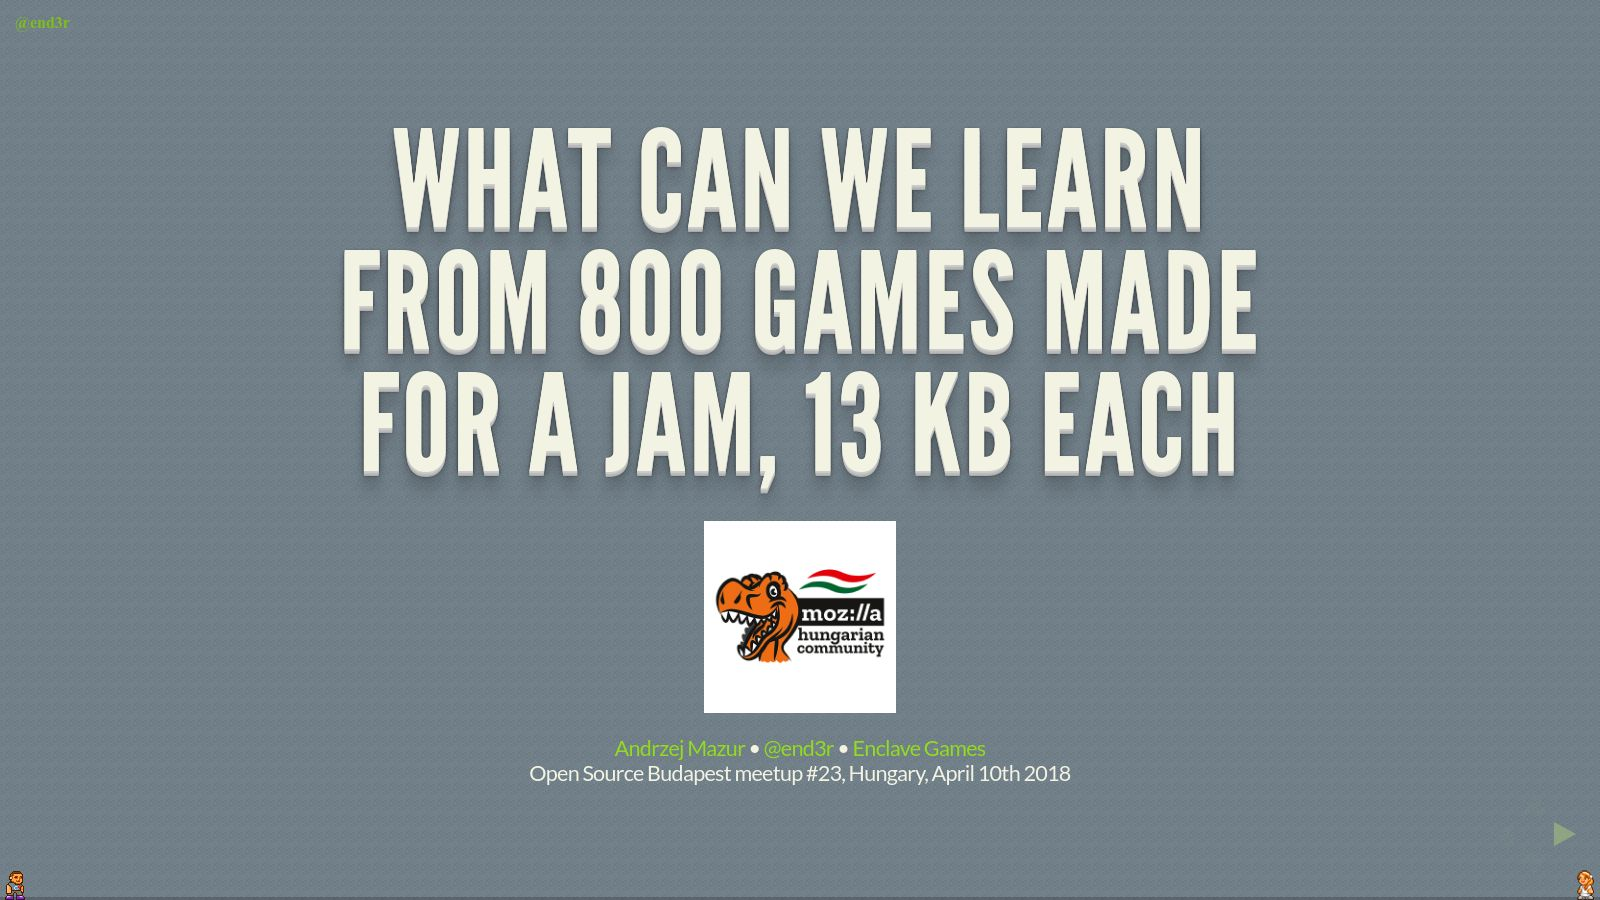 What can we learn from 800 games made for a jam, 13 kb each